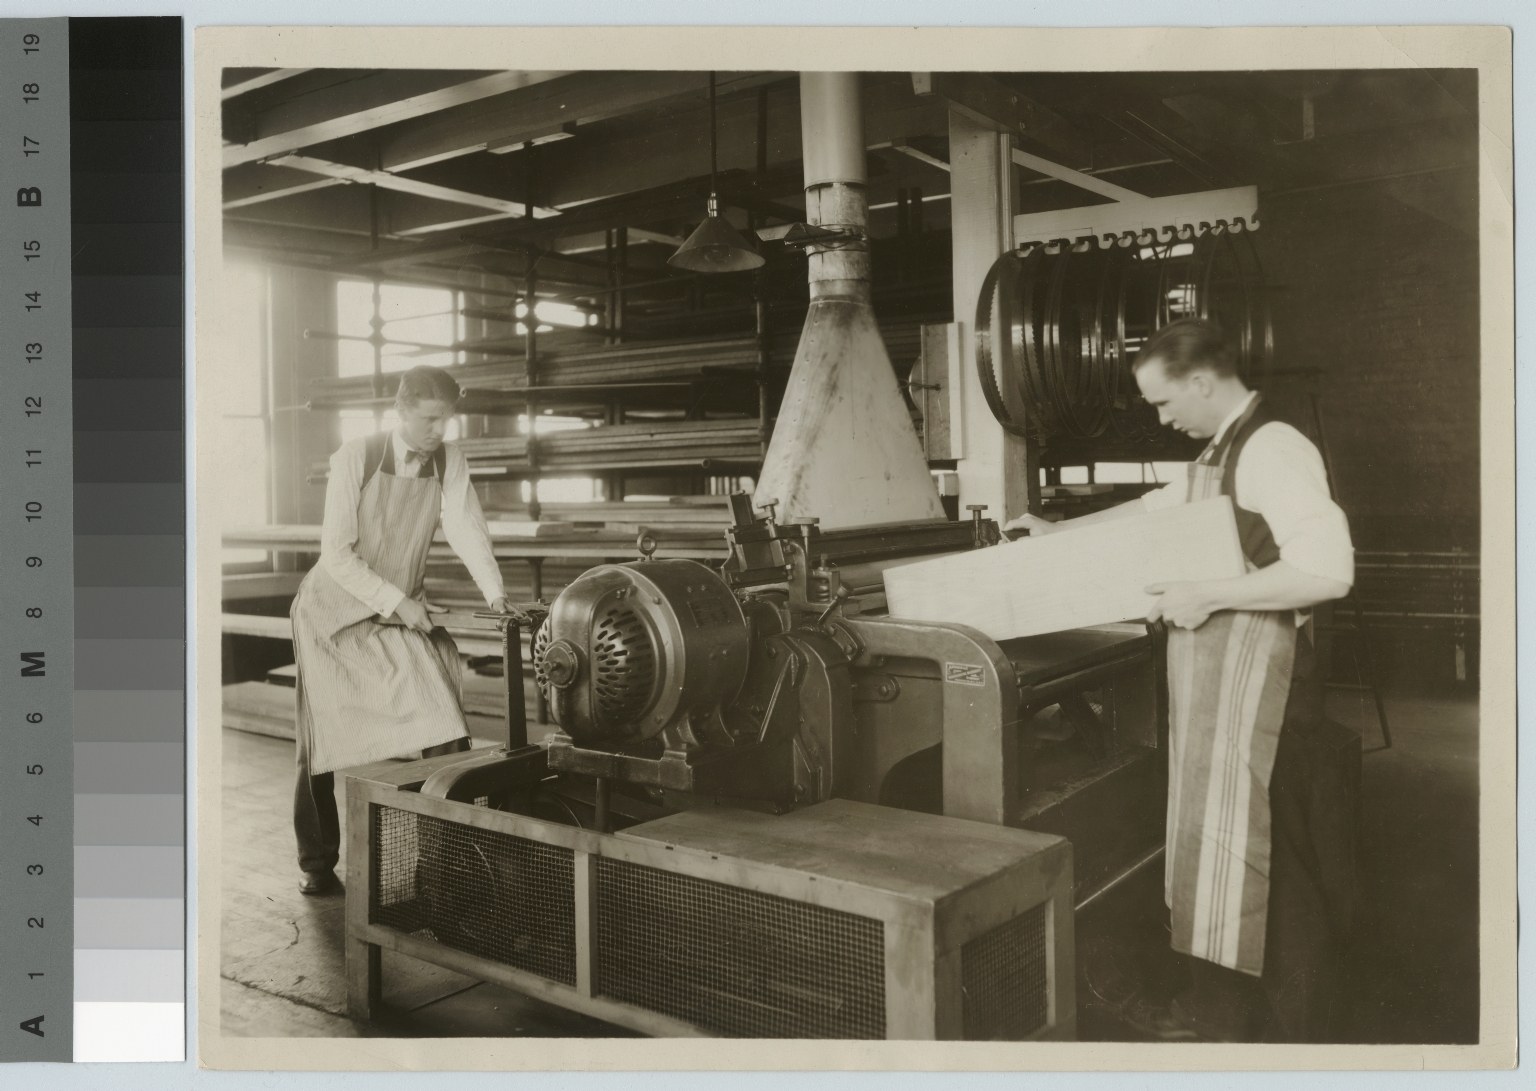 Woodworking students using equipment, Department of Manual Training, Rochester Athenaeum and Mechanics Institute